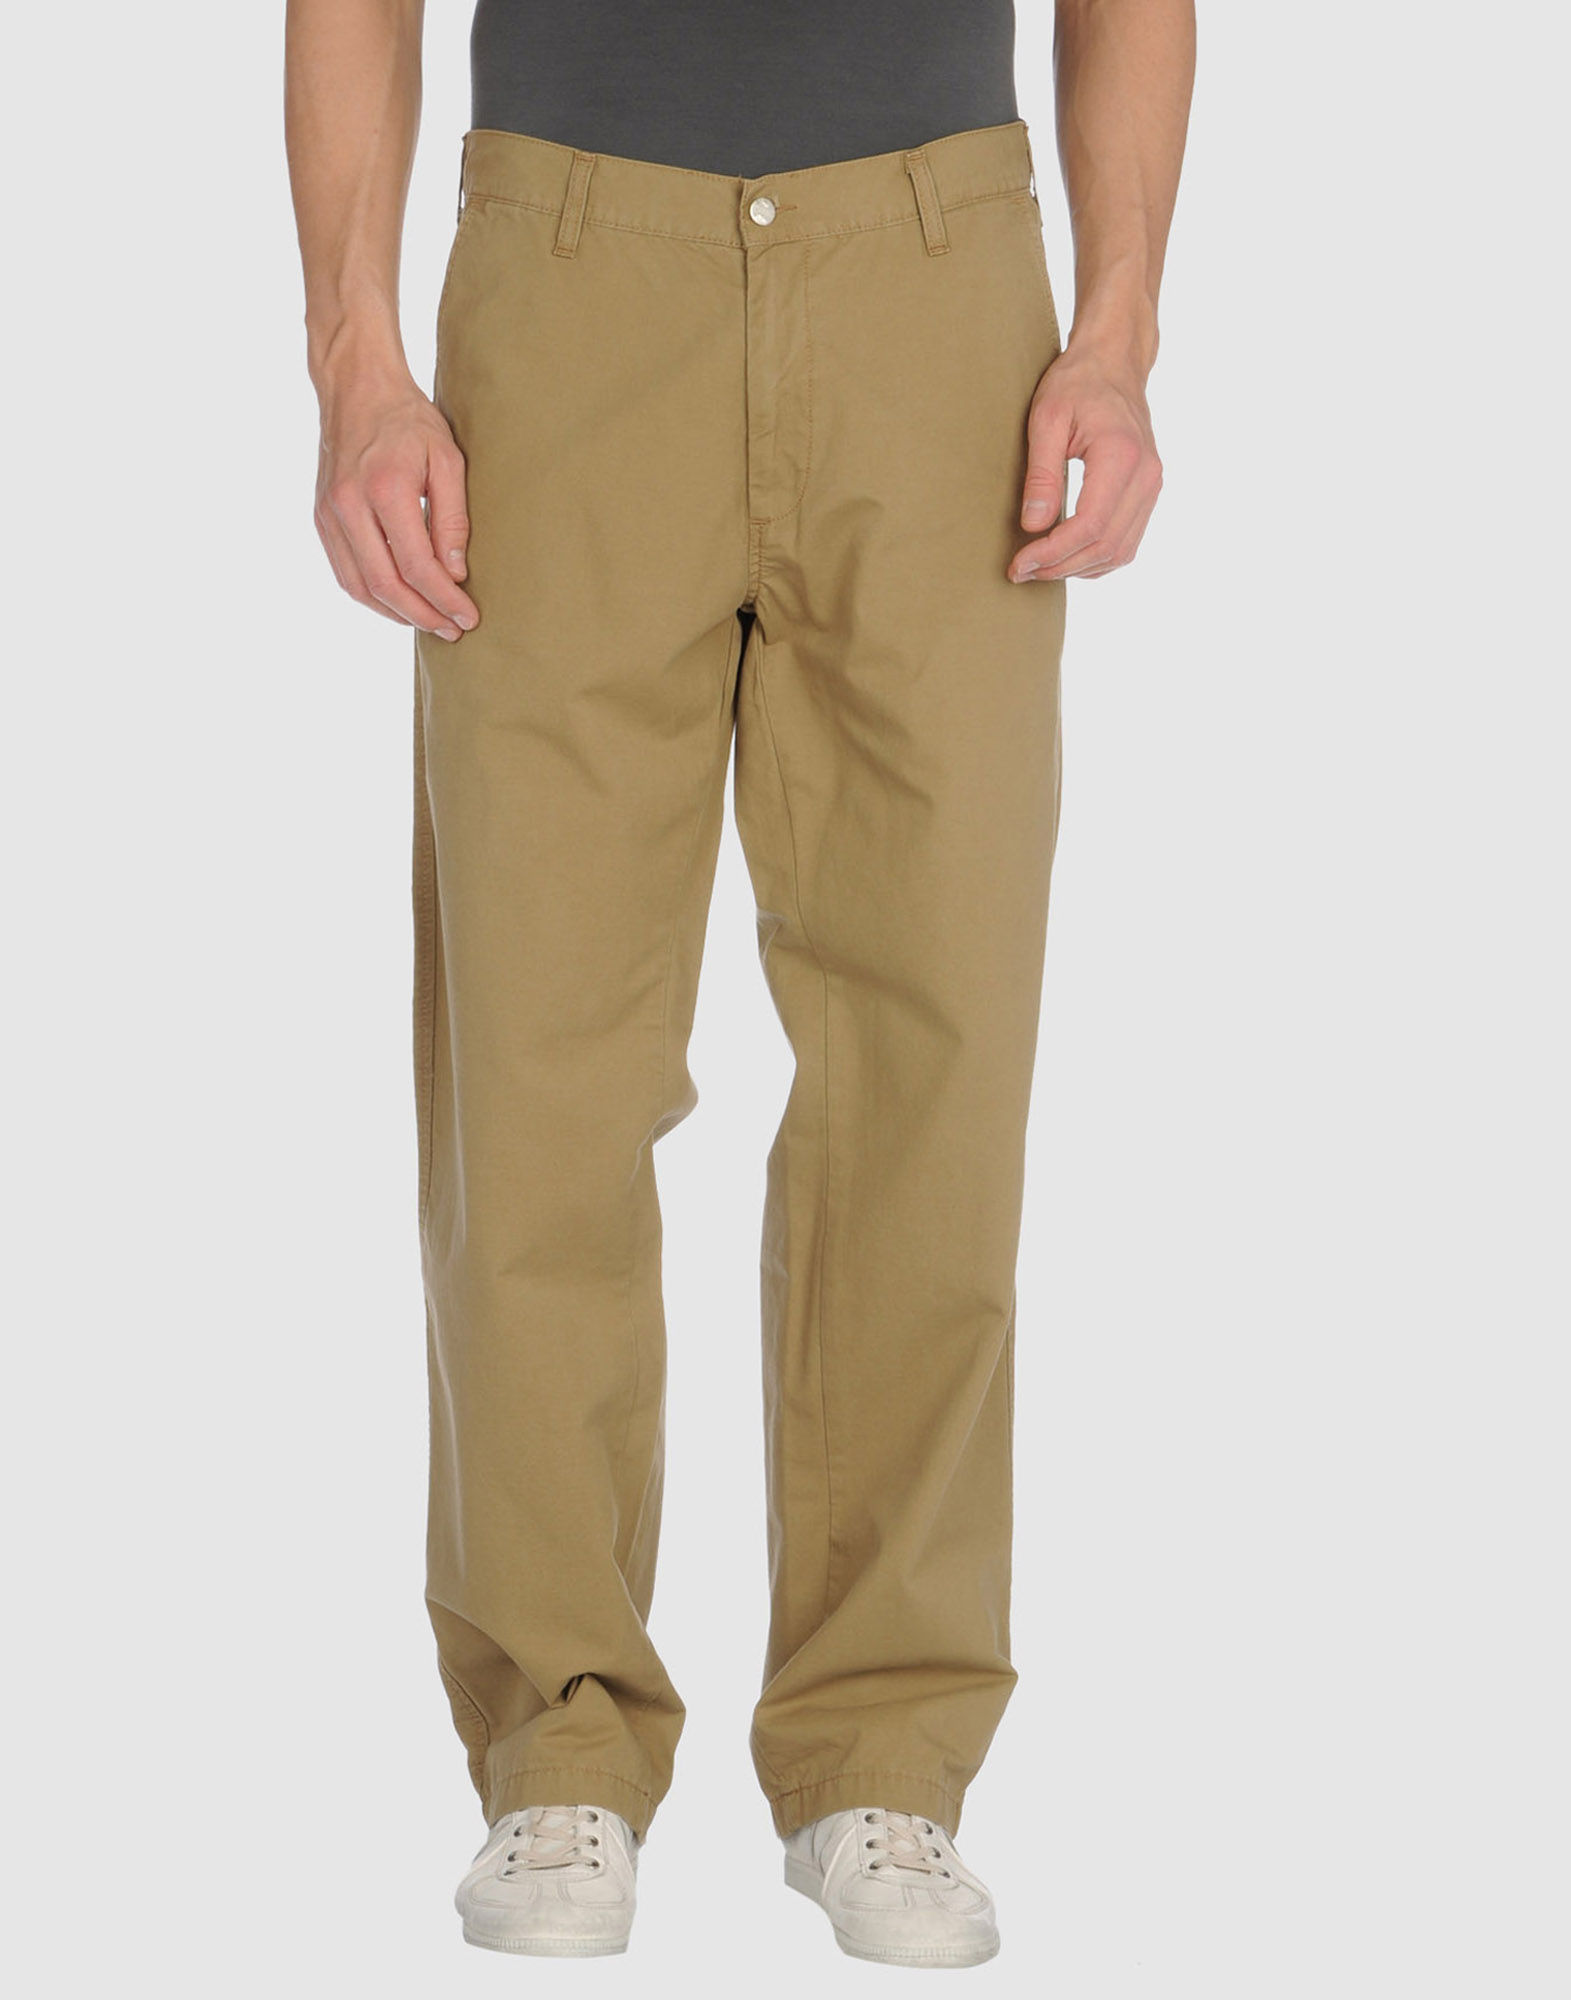 Since , the Dockers brand has been synonymous with khaki pants for men. From clean-cut khaki pants to soft knit shorts, we carry an extensive collection .